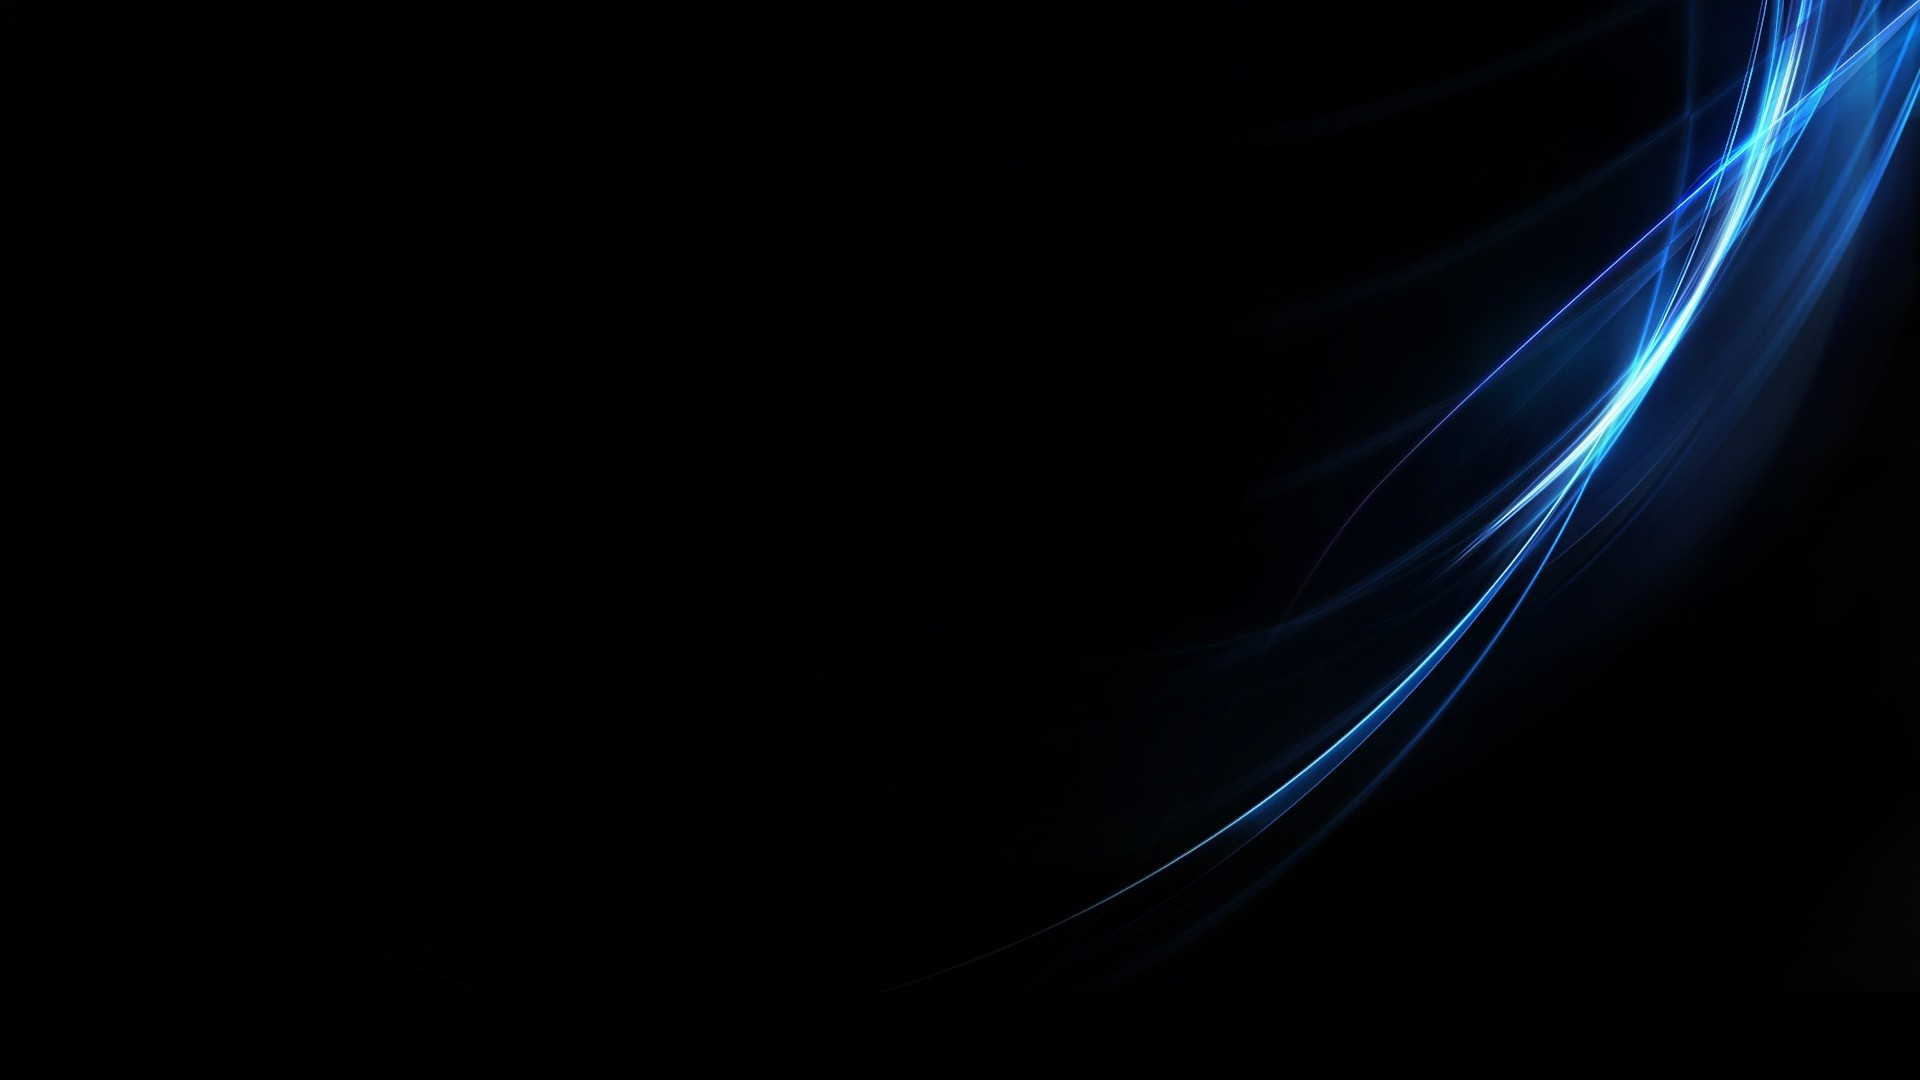 black and blue backgrounds 183��